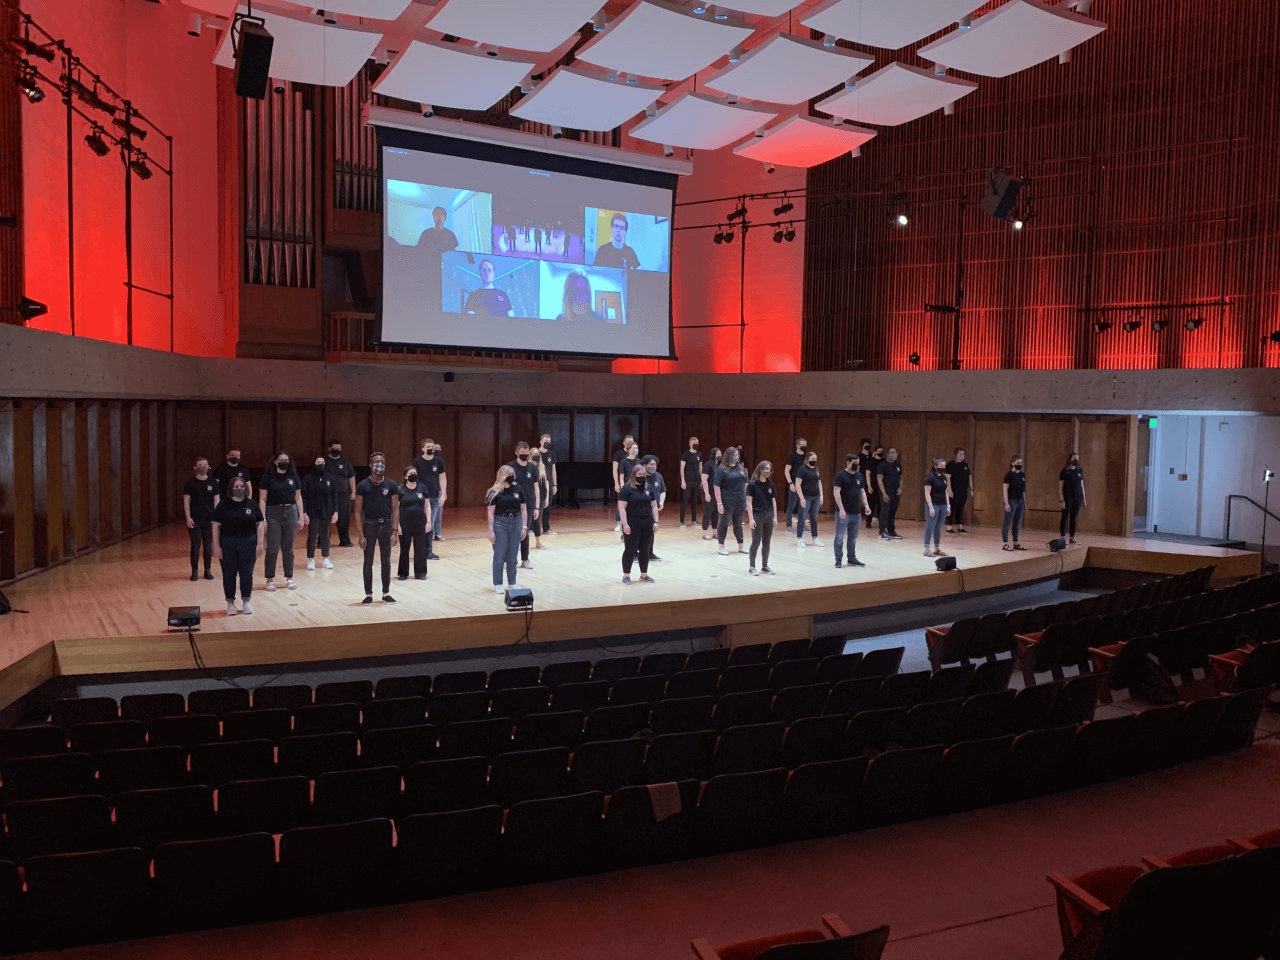 The UNO Concert Choir standing on a wooden stage with red lighting. All students are wearing jeans, black tee shirts, and masks.